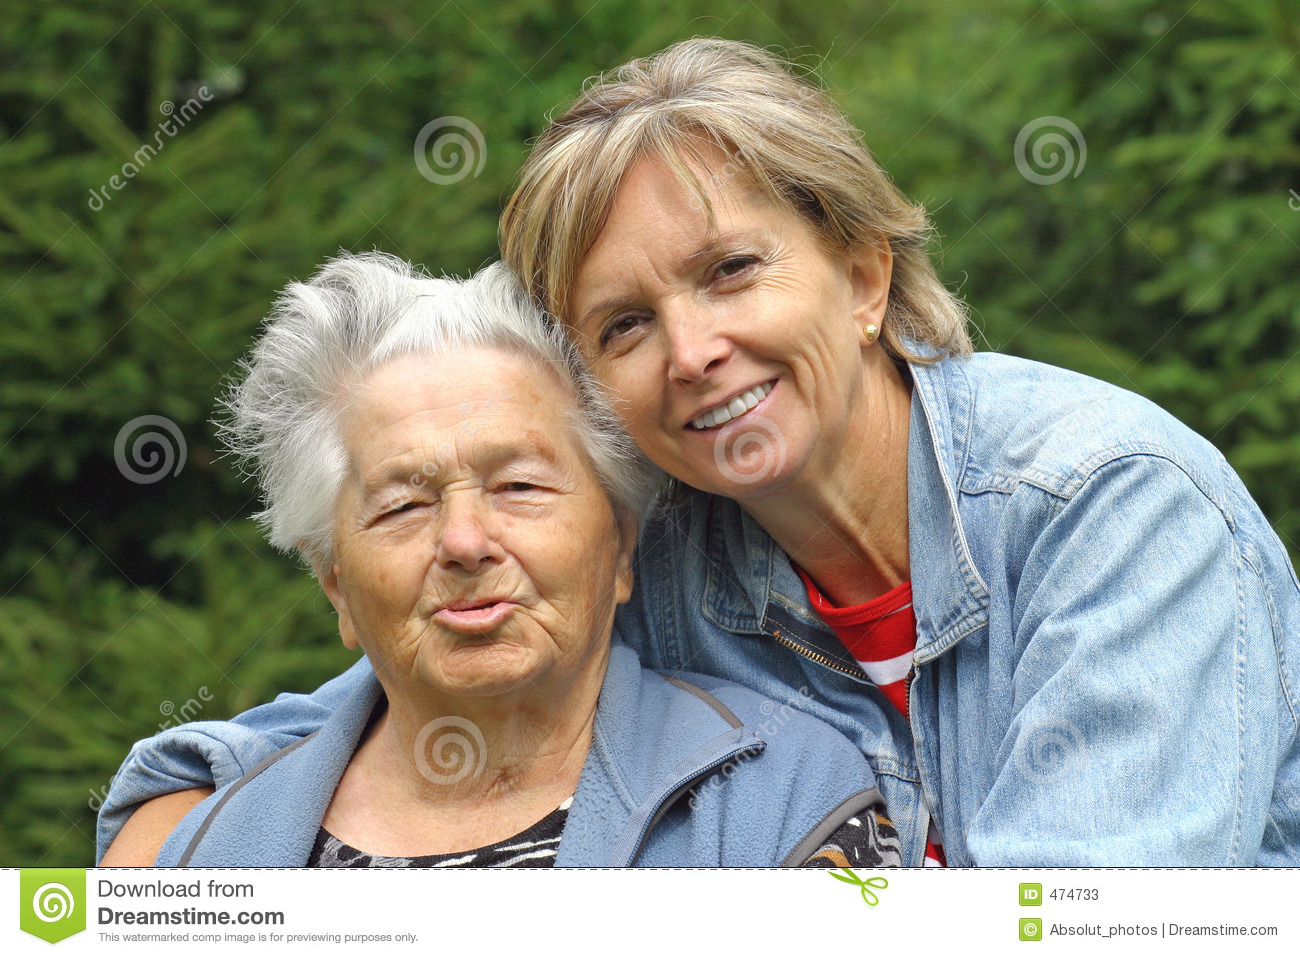 Mother and daughter [1]